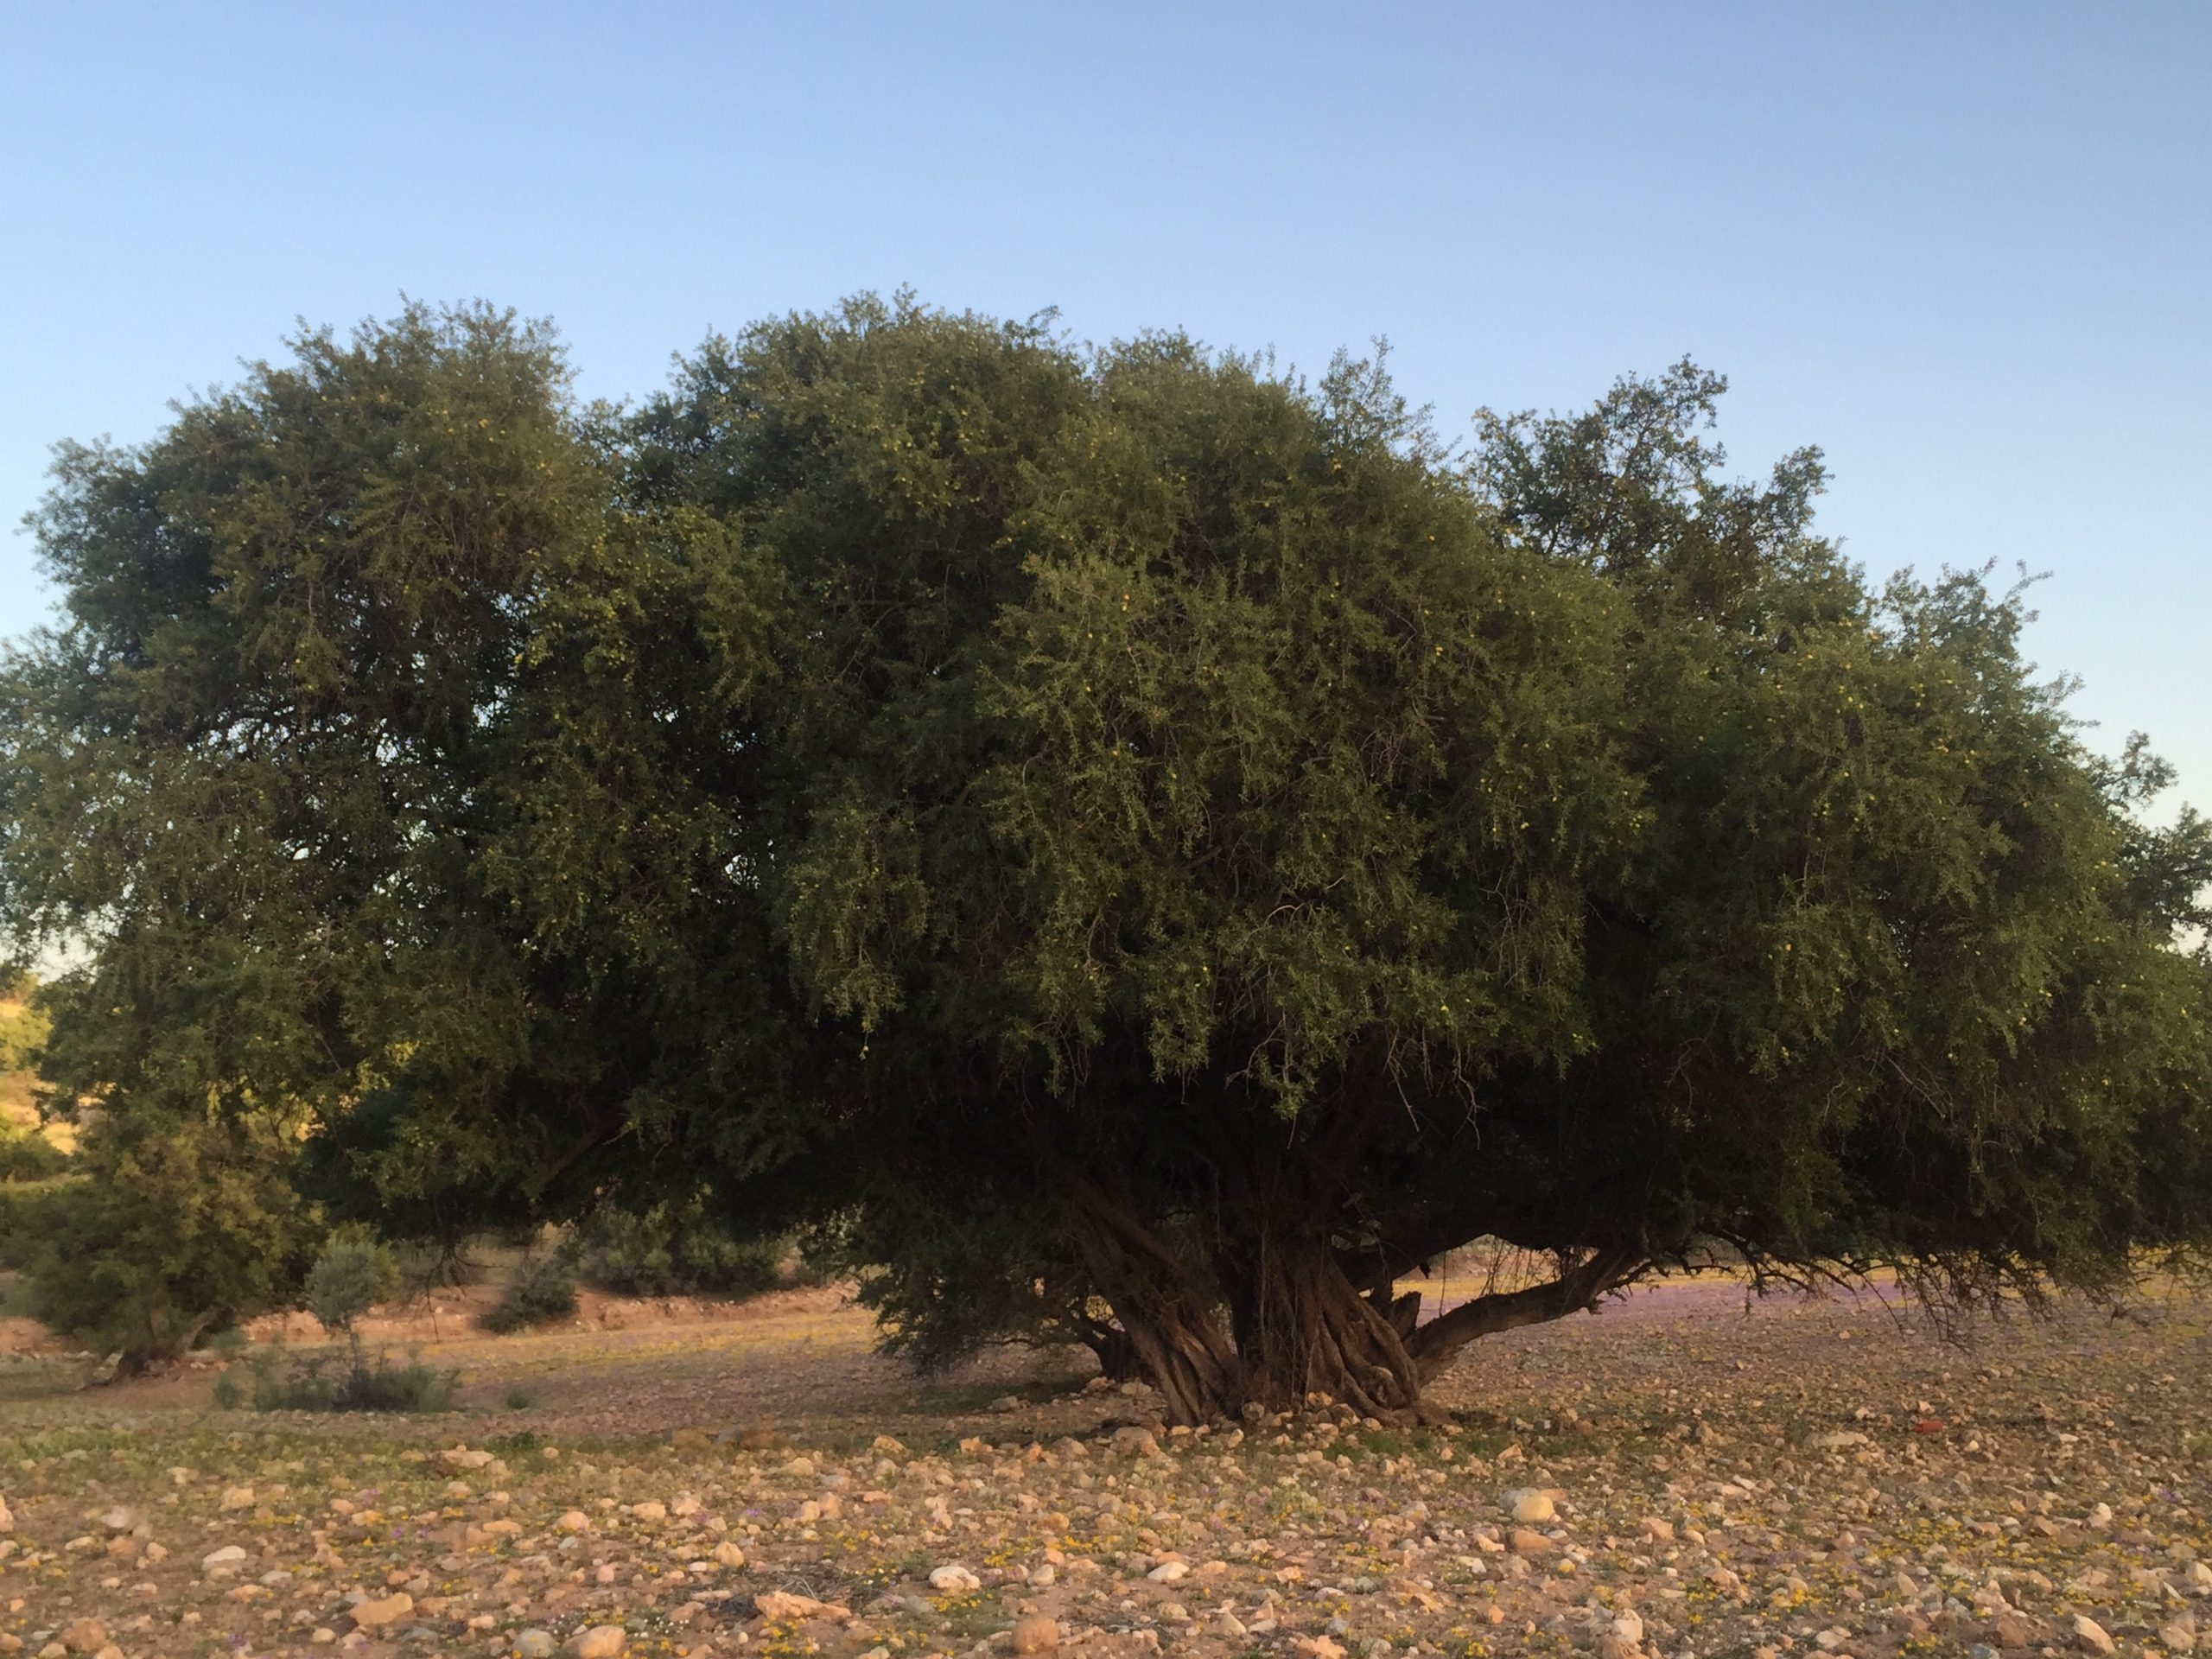 May 10 – The official day of the Argan tree